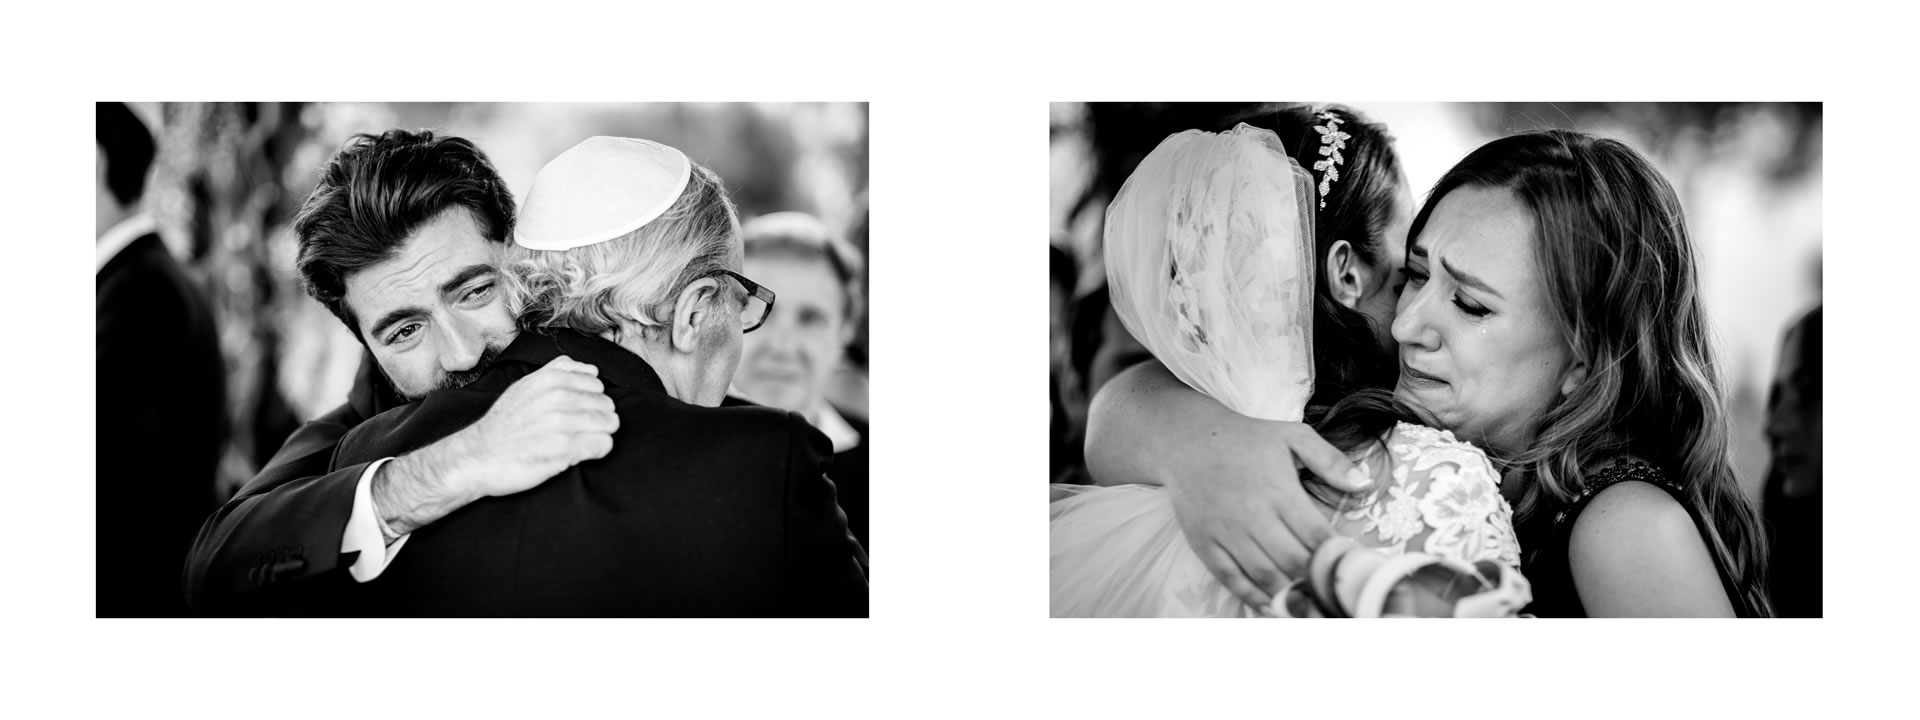 Jewish marriage in Rome: a photoreportage - 27 :: Jewish marriage in Rome: a photoreportage :: Luxury wedding photography - 26 :: Jewish marriage in Rome: a photoreportage - 27